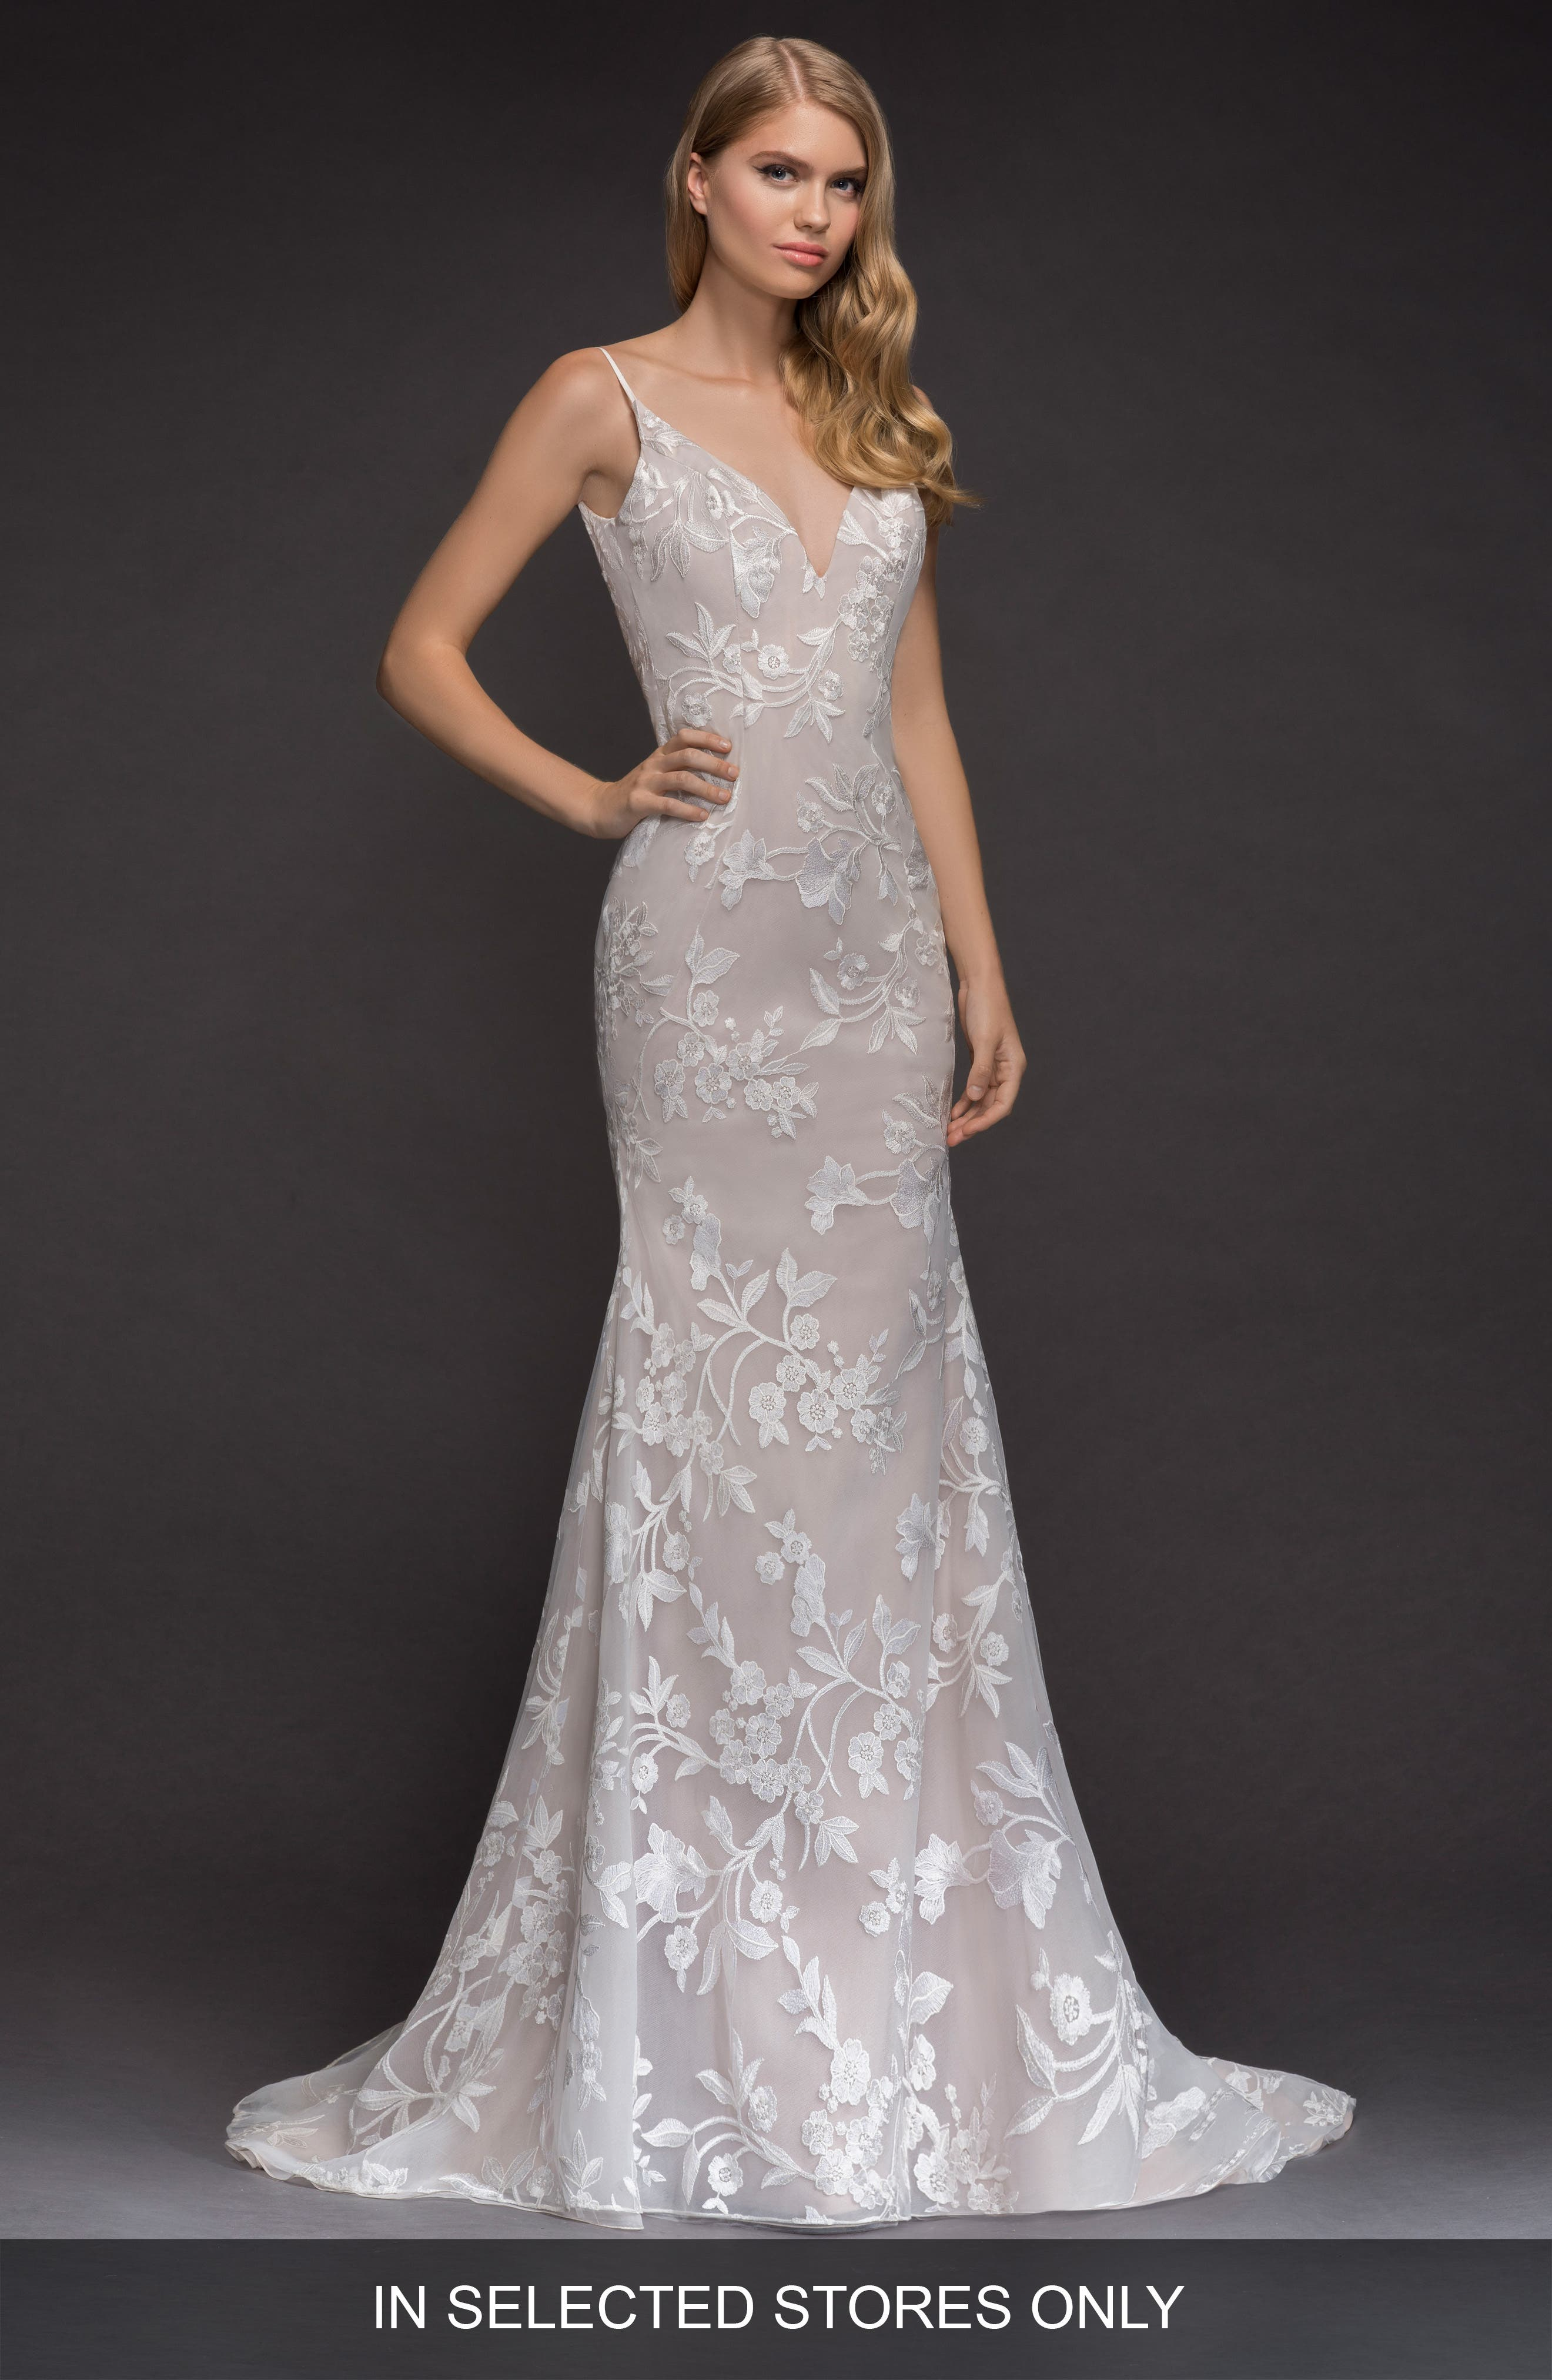 Main Image - Blush by Hayley Paige Nessy Embroidered Trumpet Gown